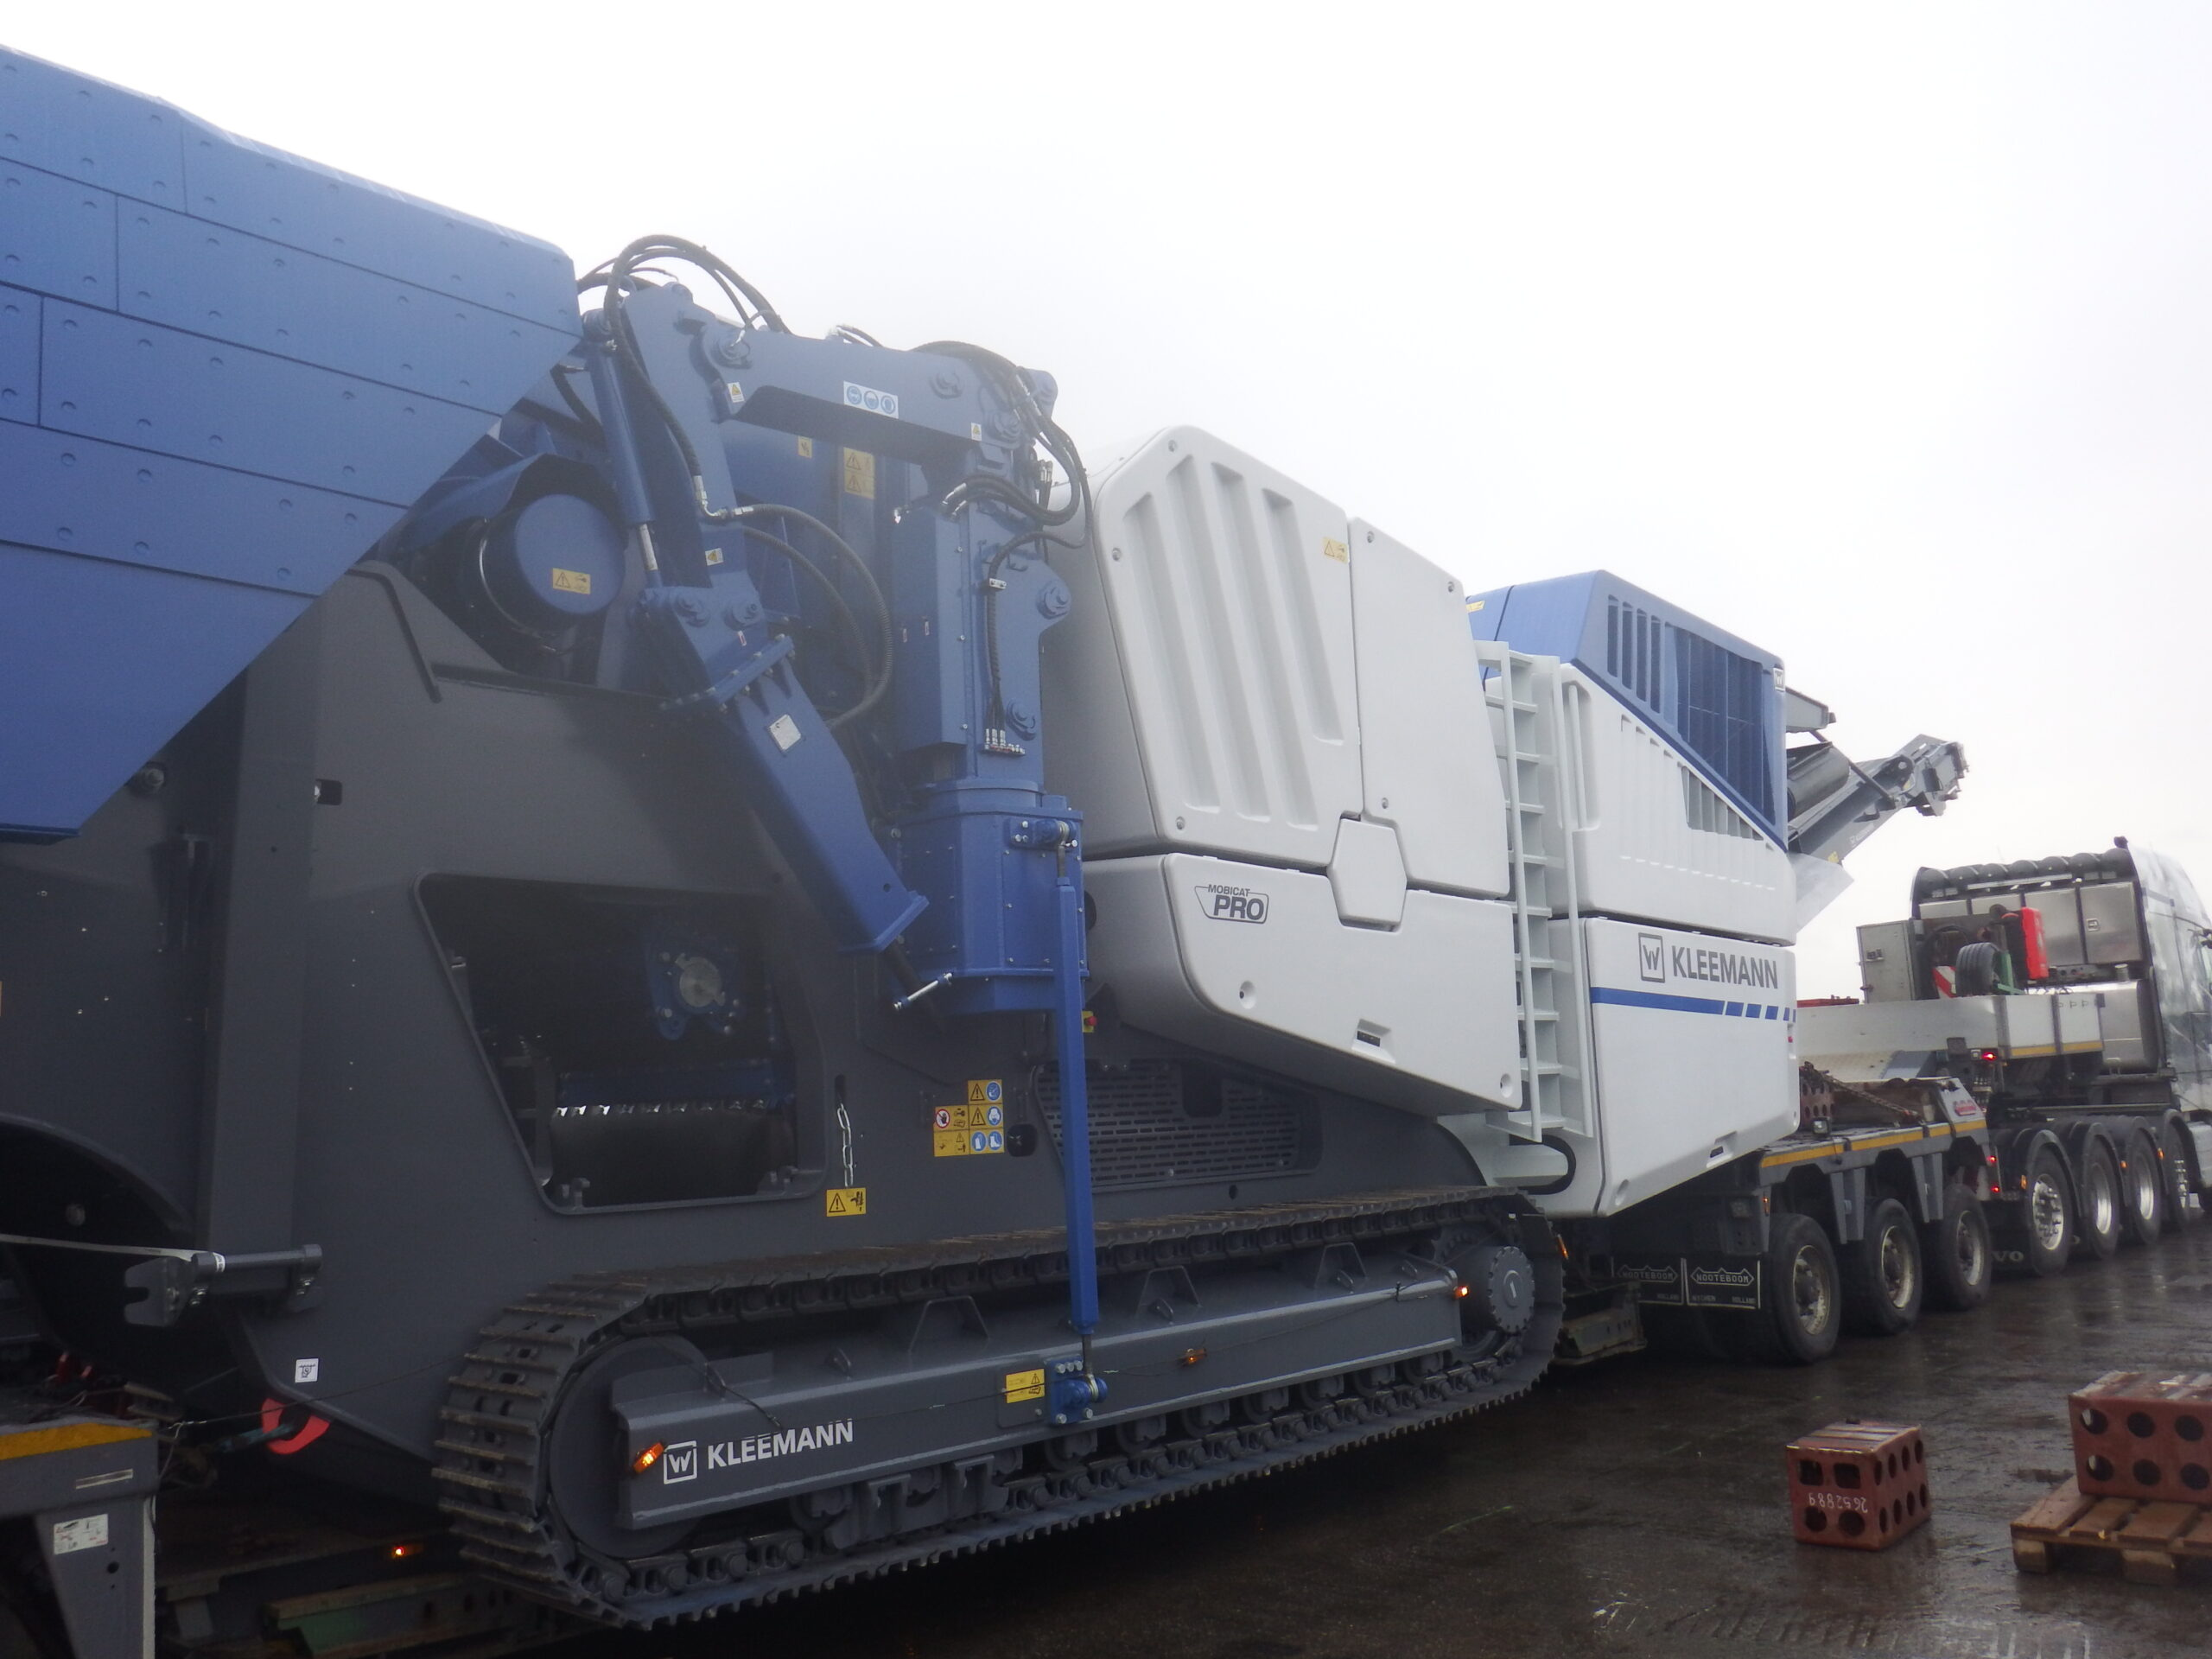 7WL busy with crusher movements within last weeks